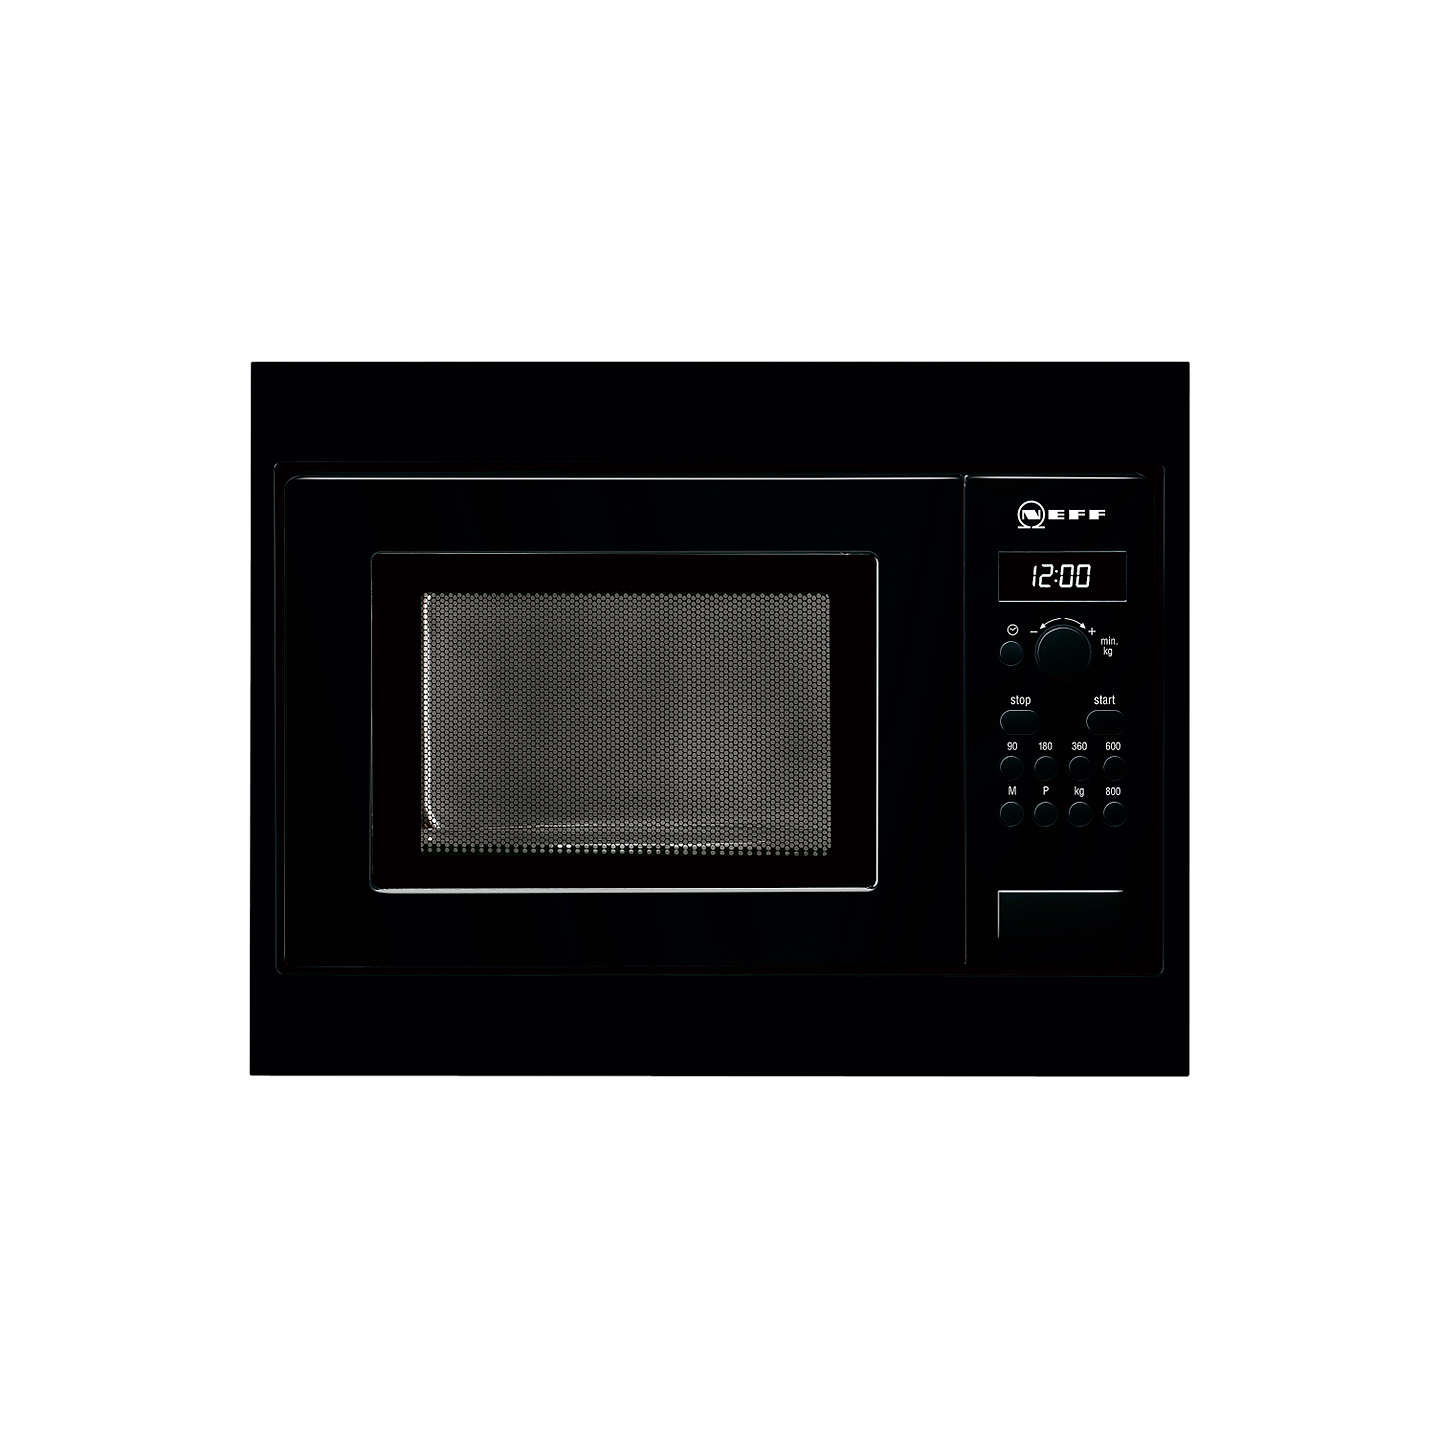 Neff H53w50s3gb Built In Microwave Oven Black At John Lewis